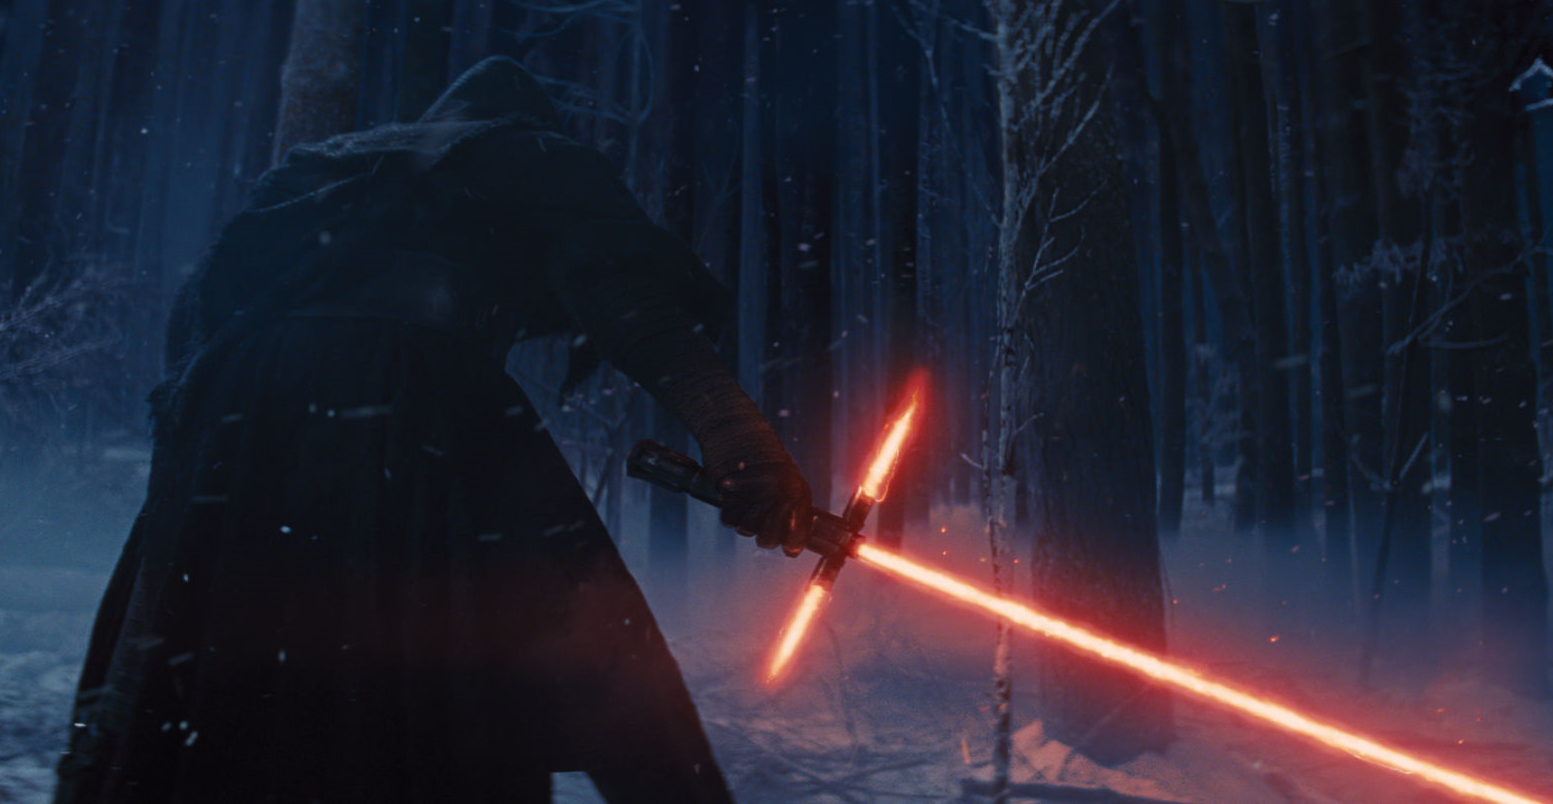 star-wars-the-force-awakens-trailer-gets-detailed-0307-2